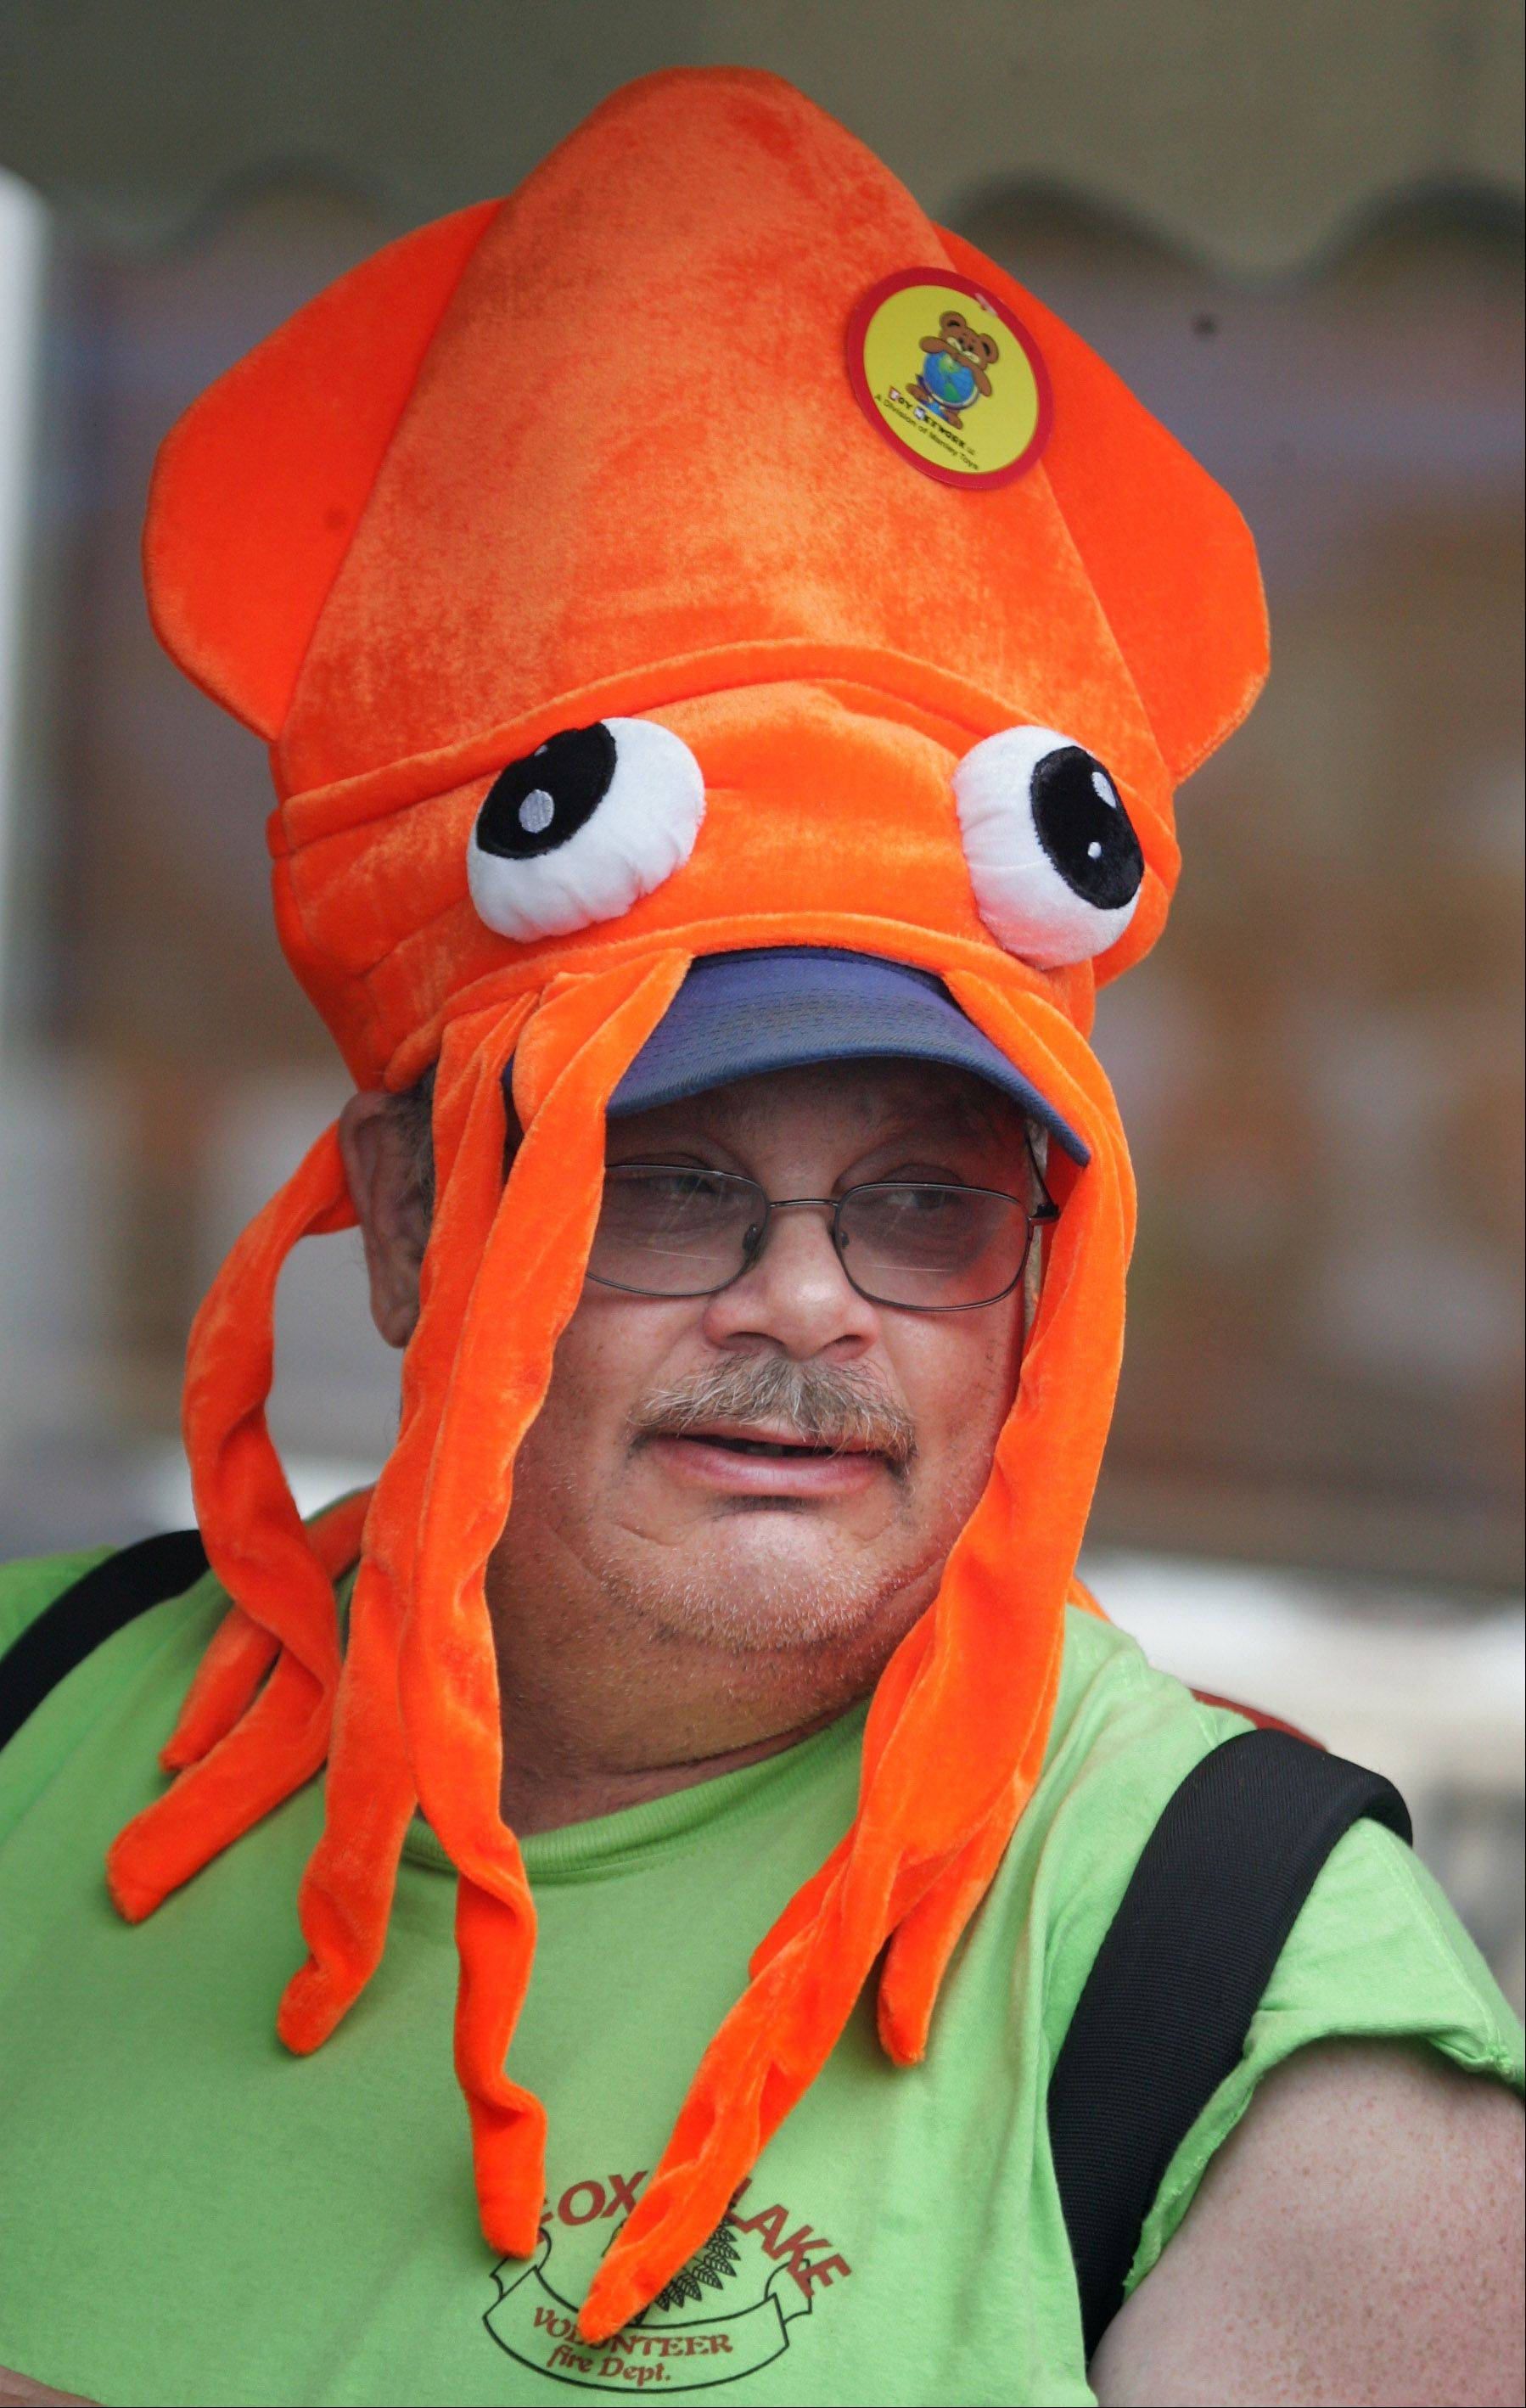 Fox Lake firefighter Bob Smith wears a squid hat during the water fights Sunday at the 54th annual Fox Lake Fireman's Festival.